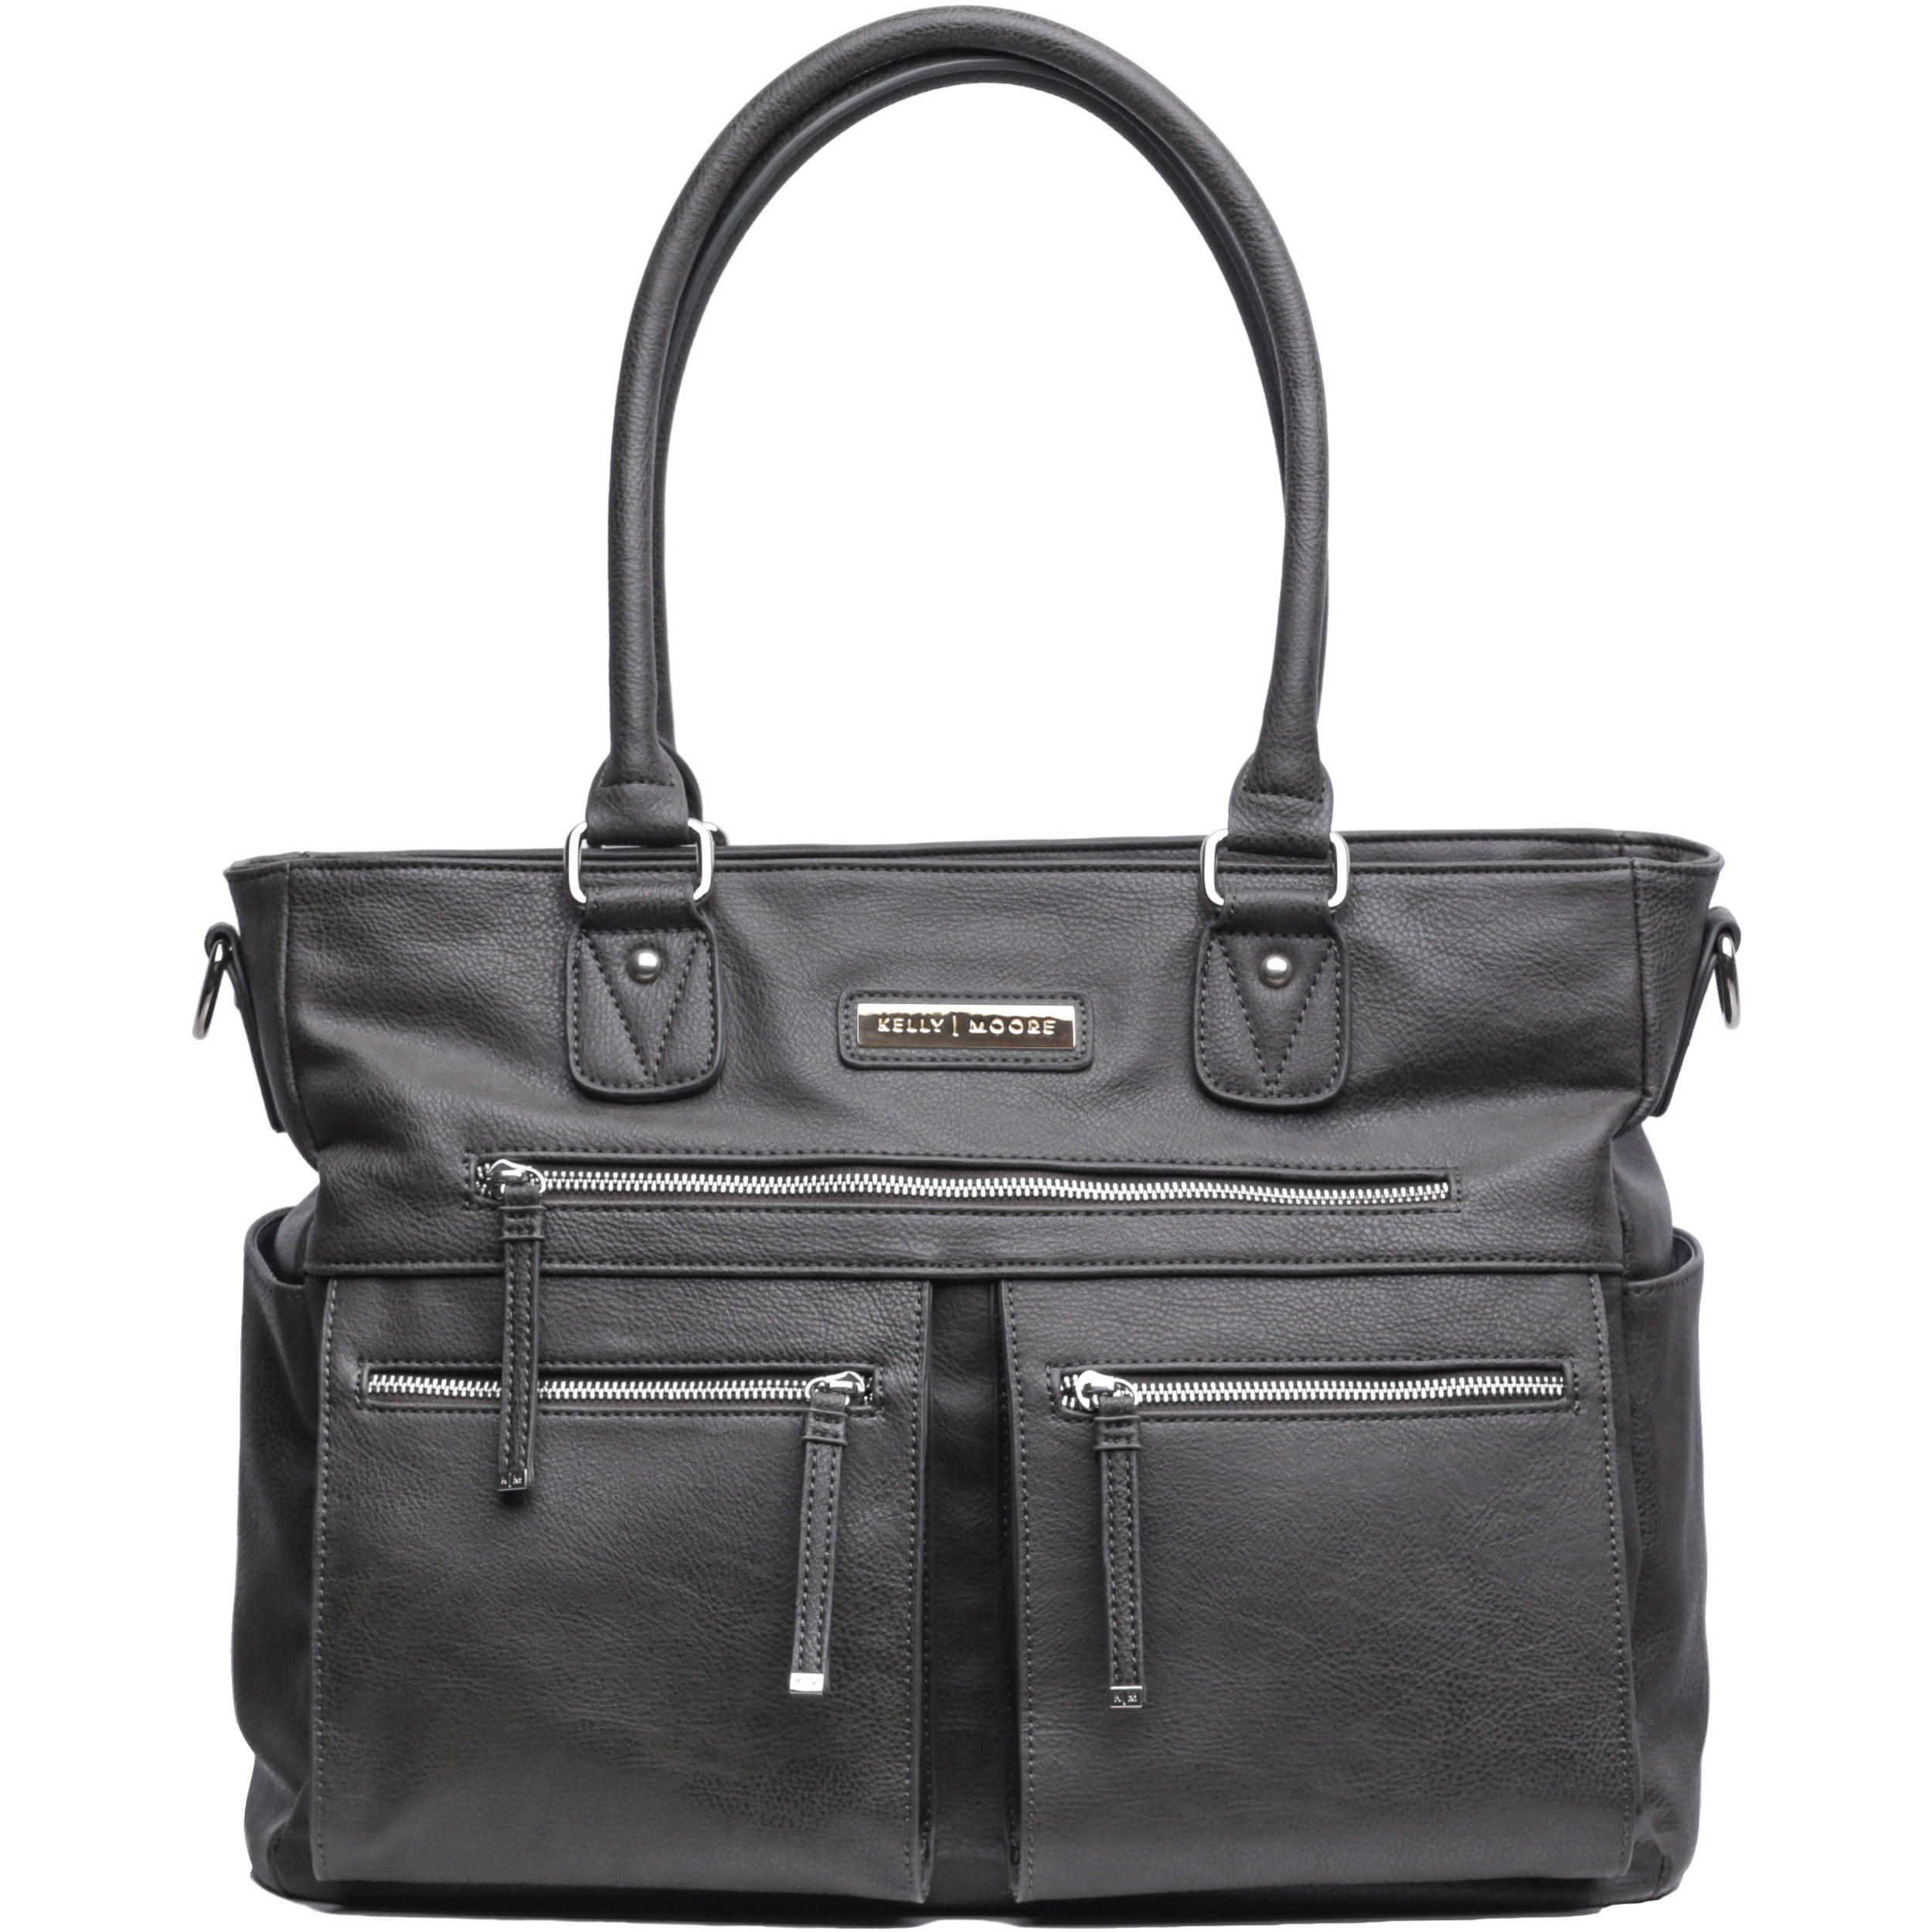 Kelly Moore Bag The Libby Nbsp 2 0 Shoulder Stone